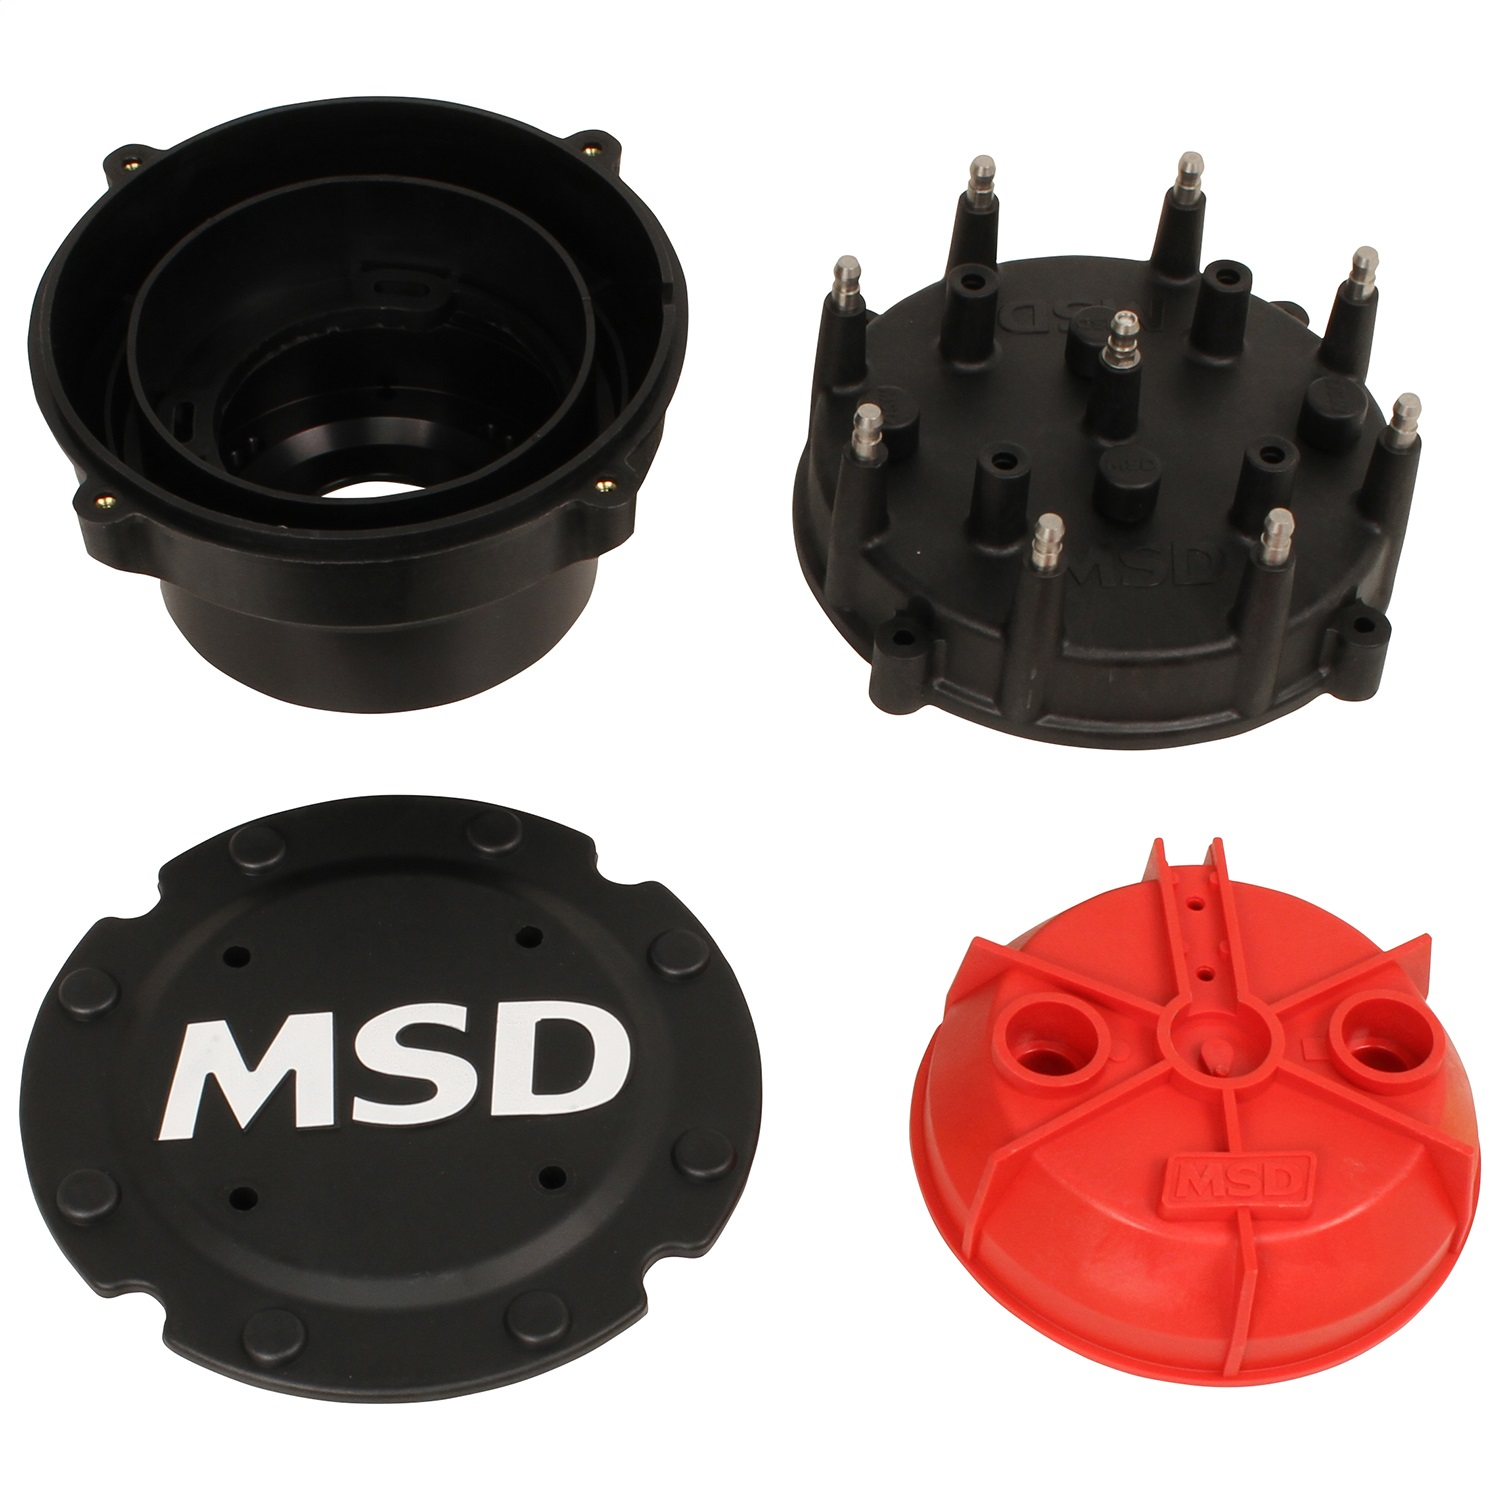 MSD Ignition 74553 Cap-A-Dapt Cap And Rotor